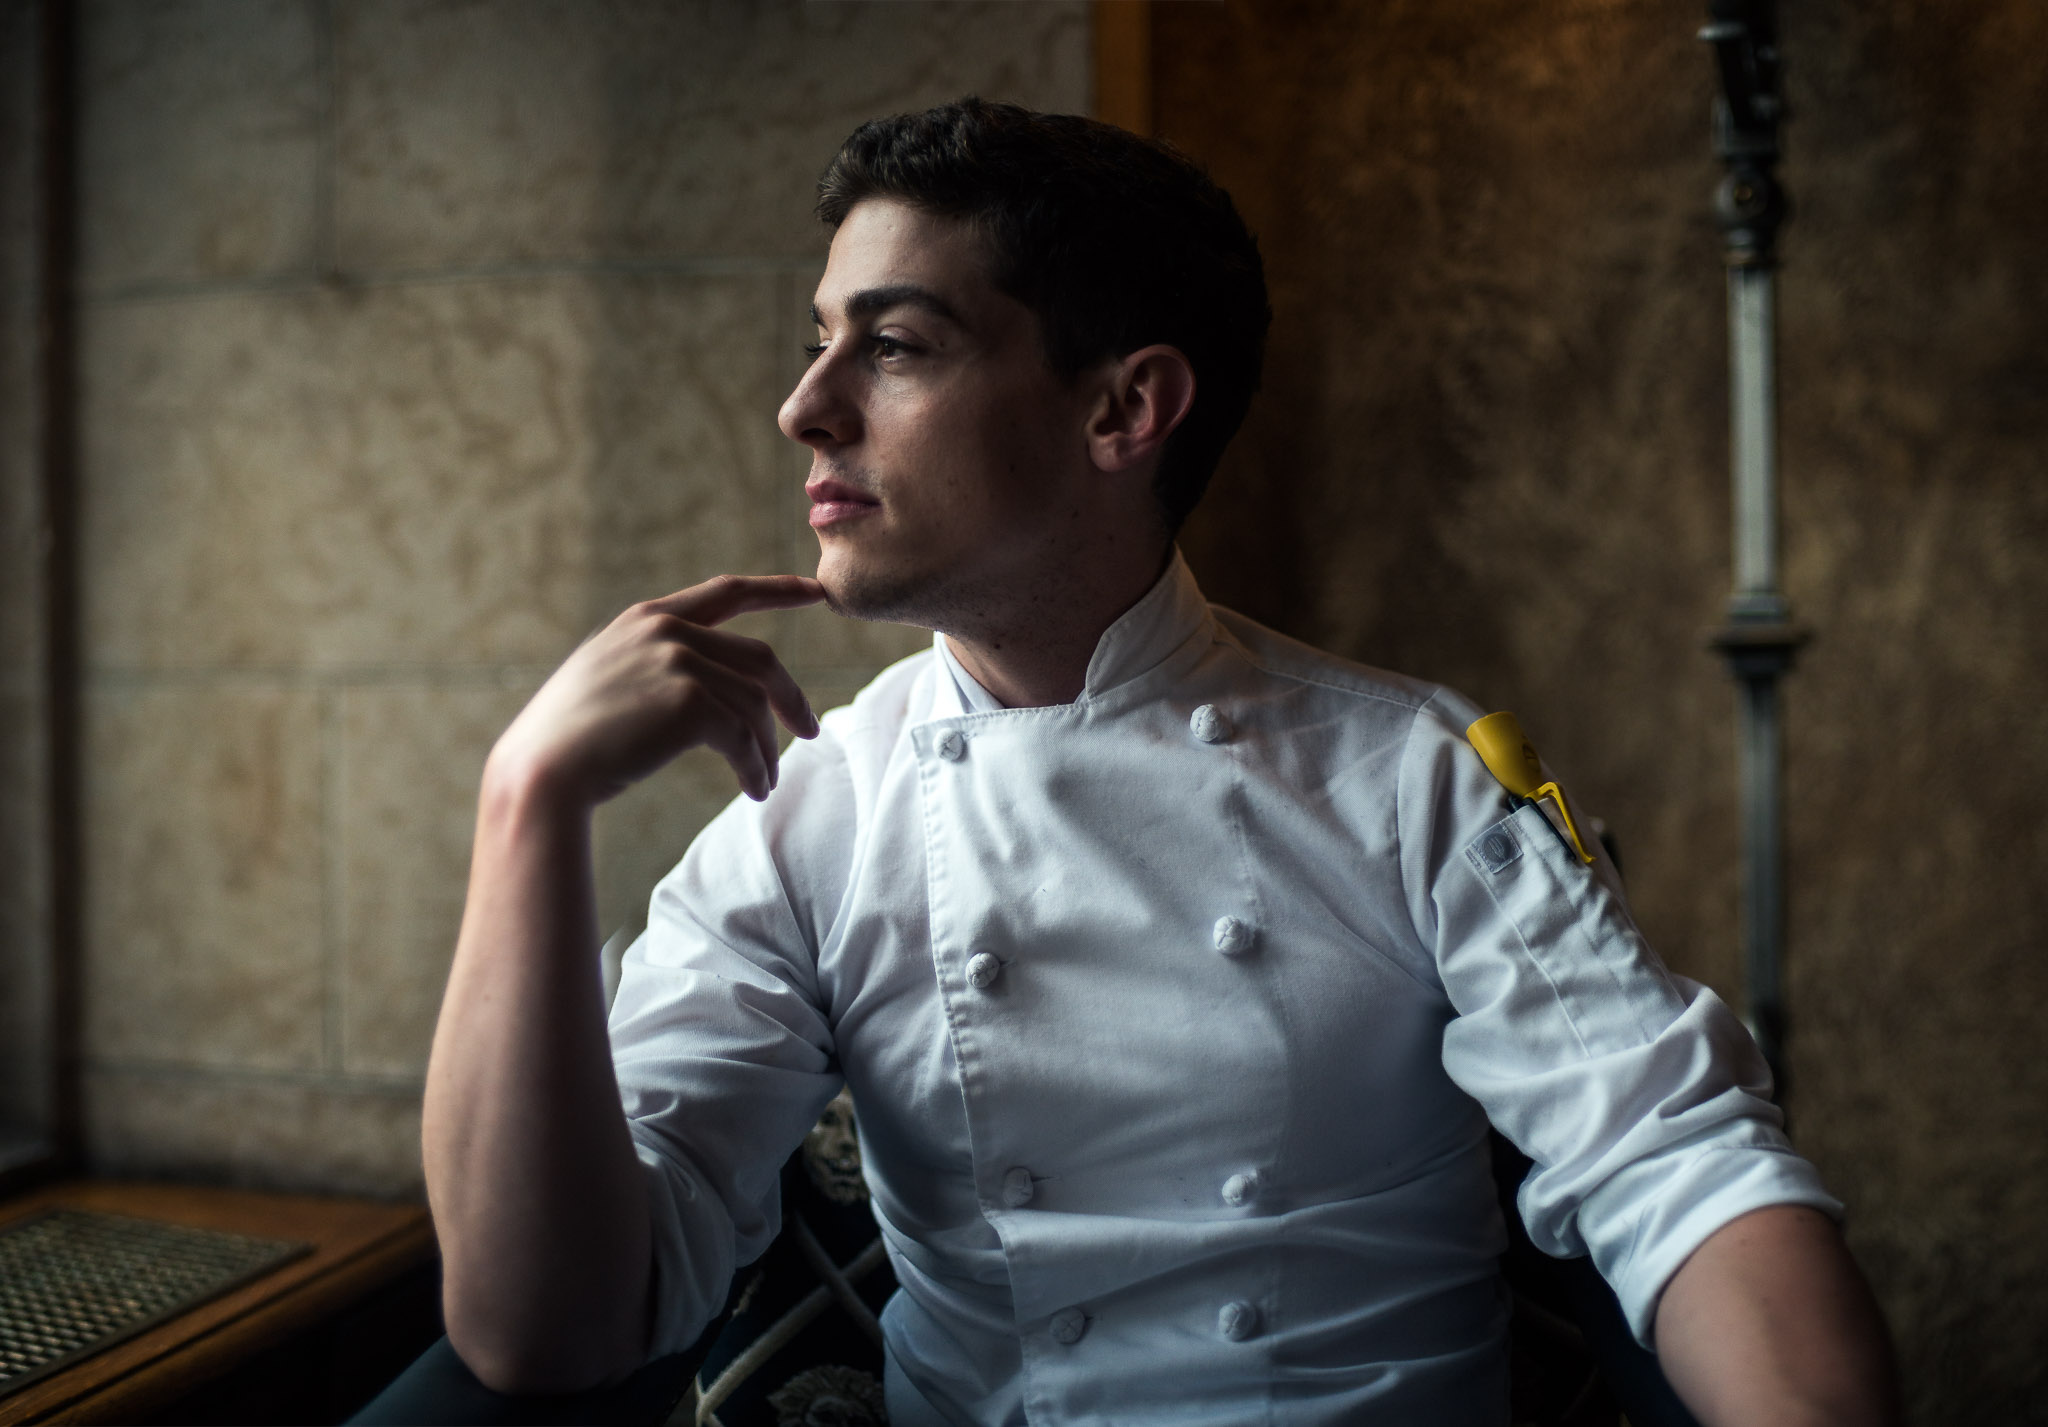 Maxim chef looking outside window